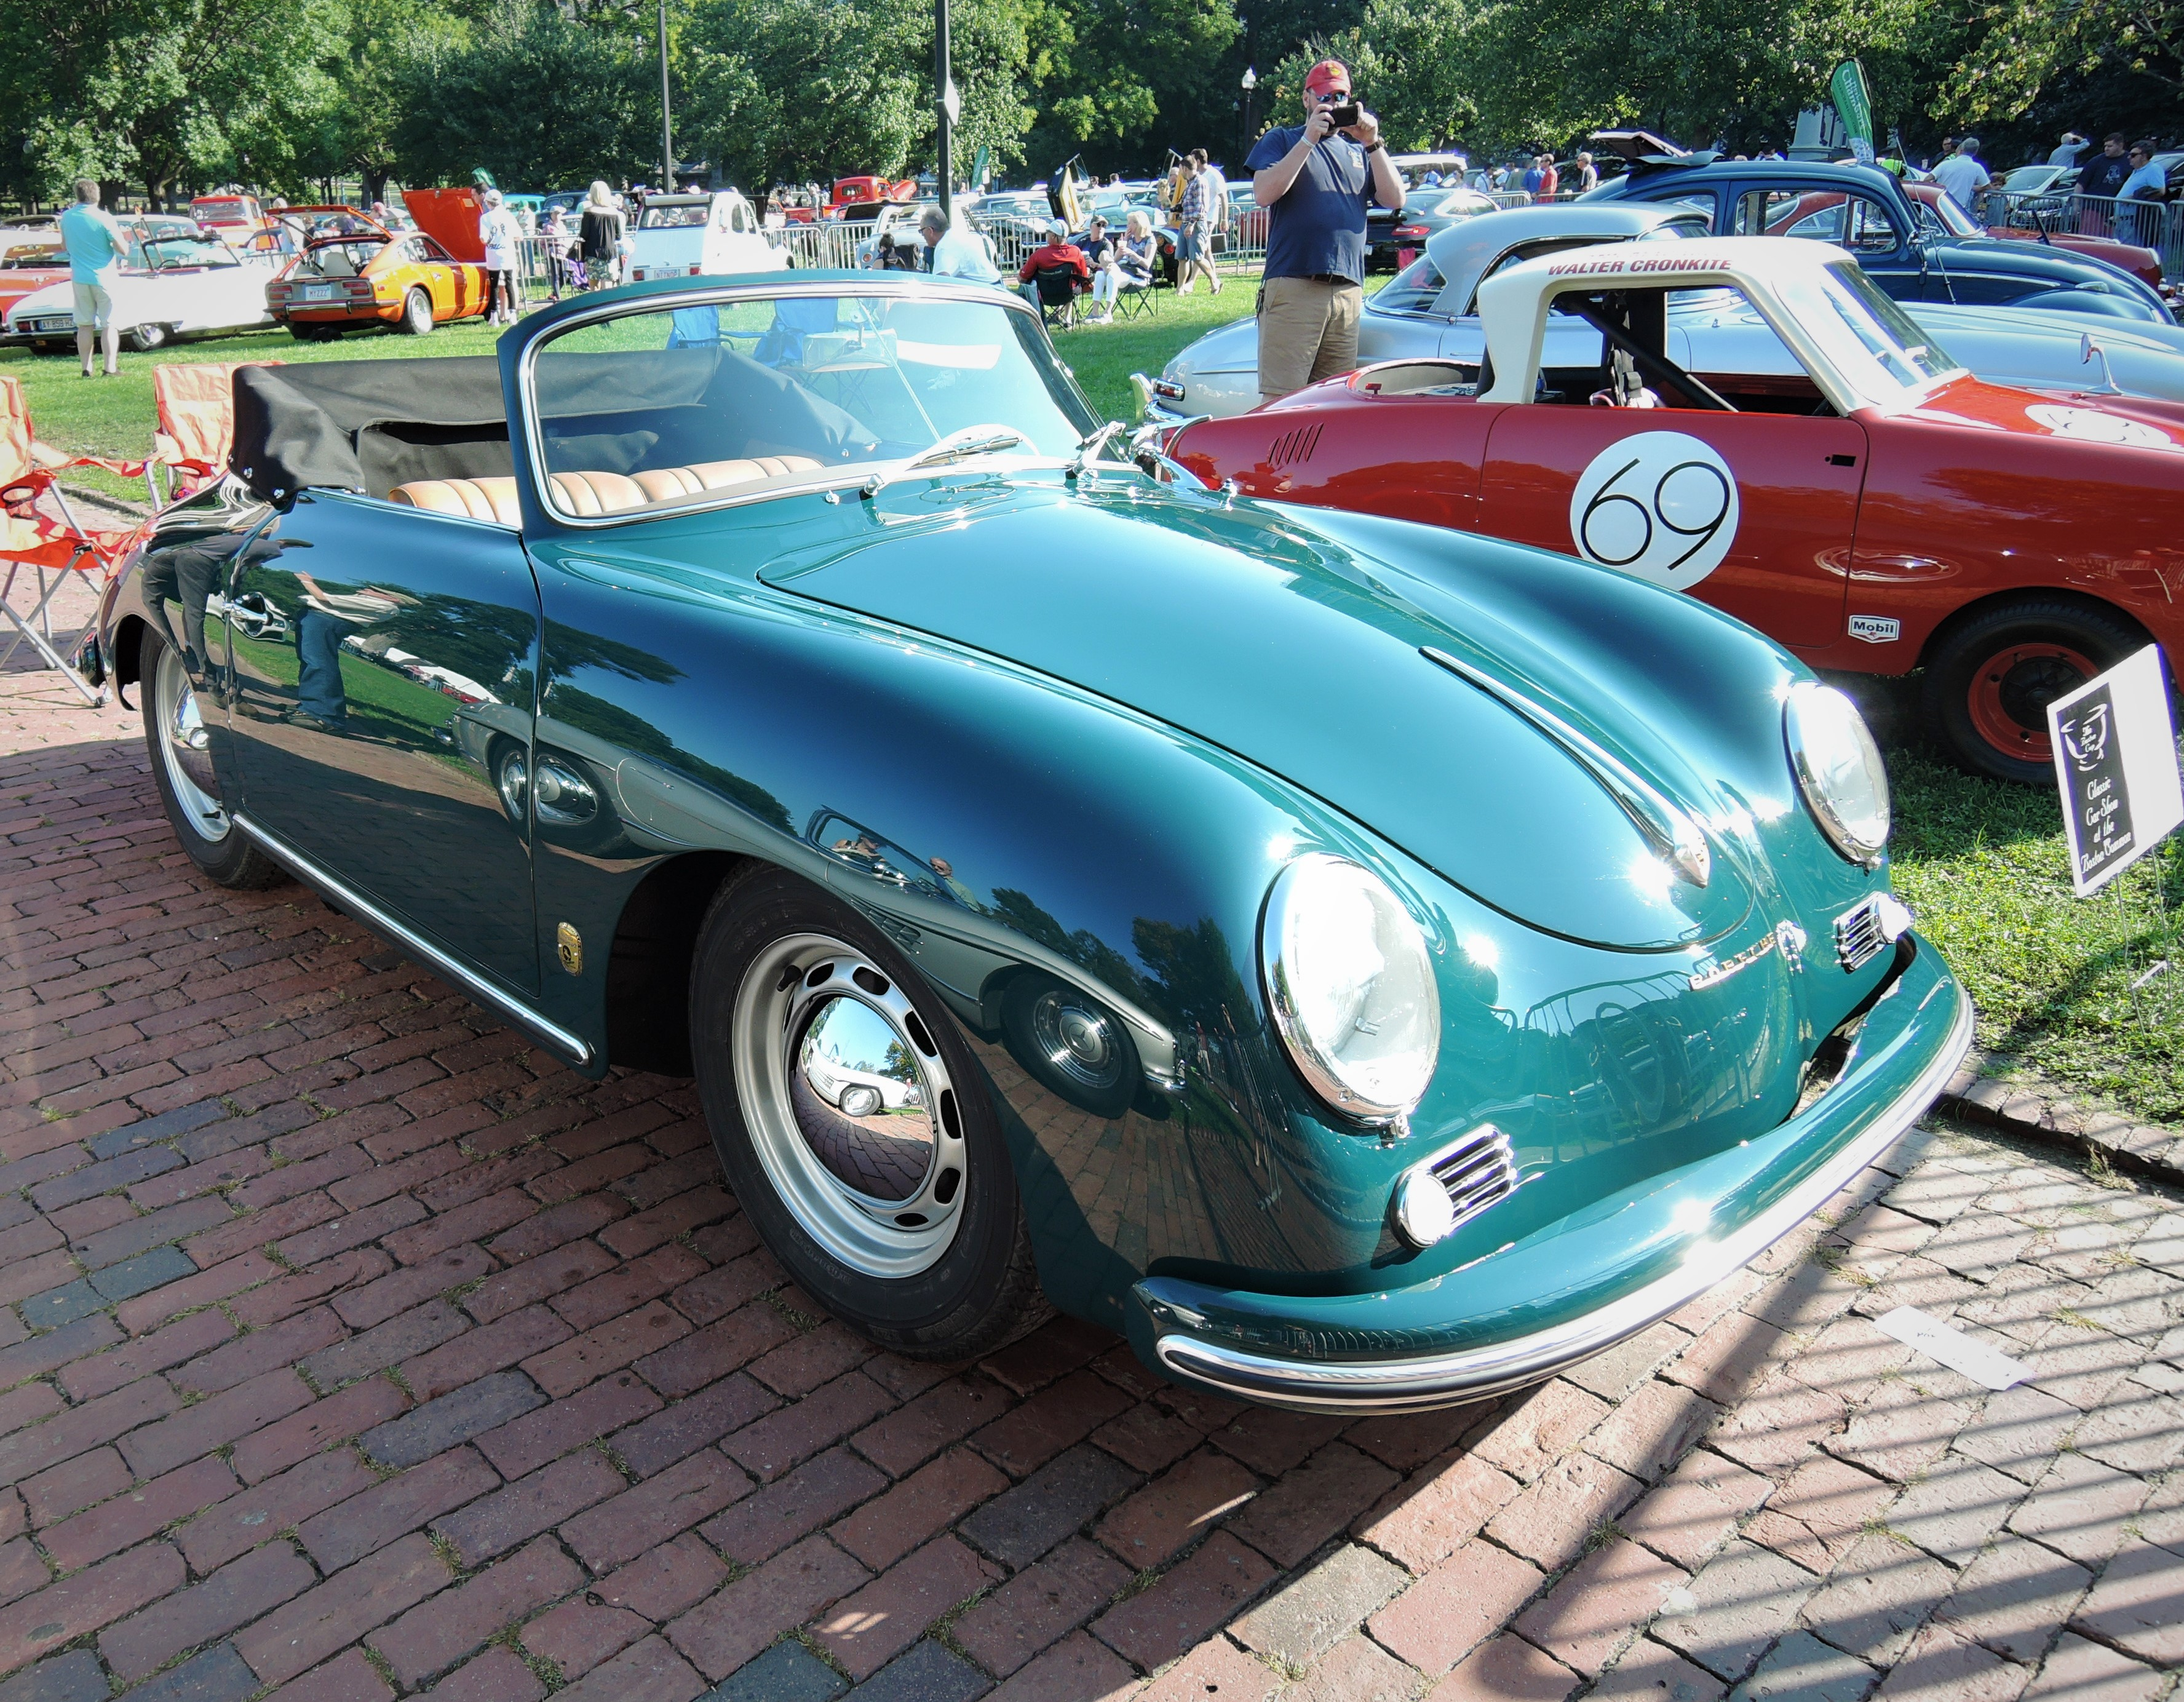 green 1957 Porsche 356 A Cabriolet - The Boston Cup 2017